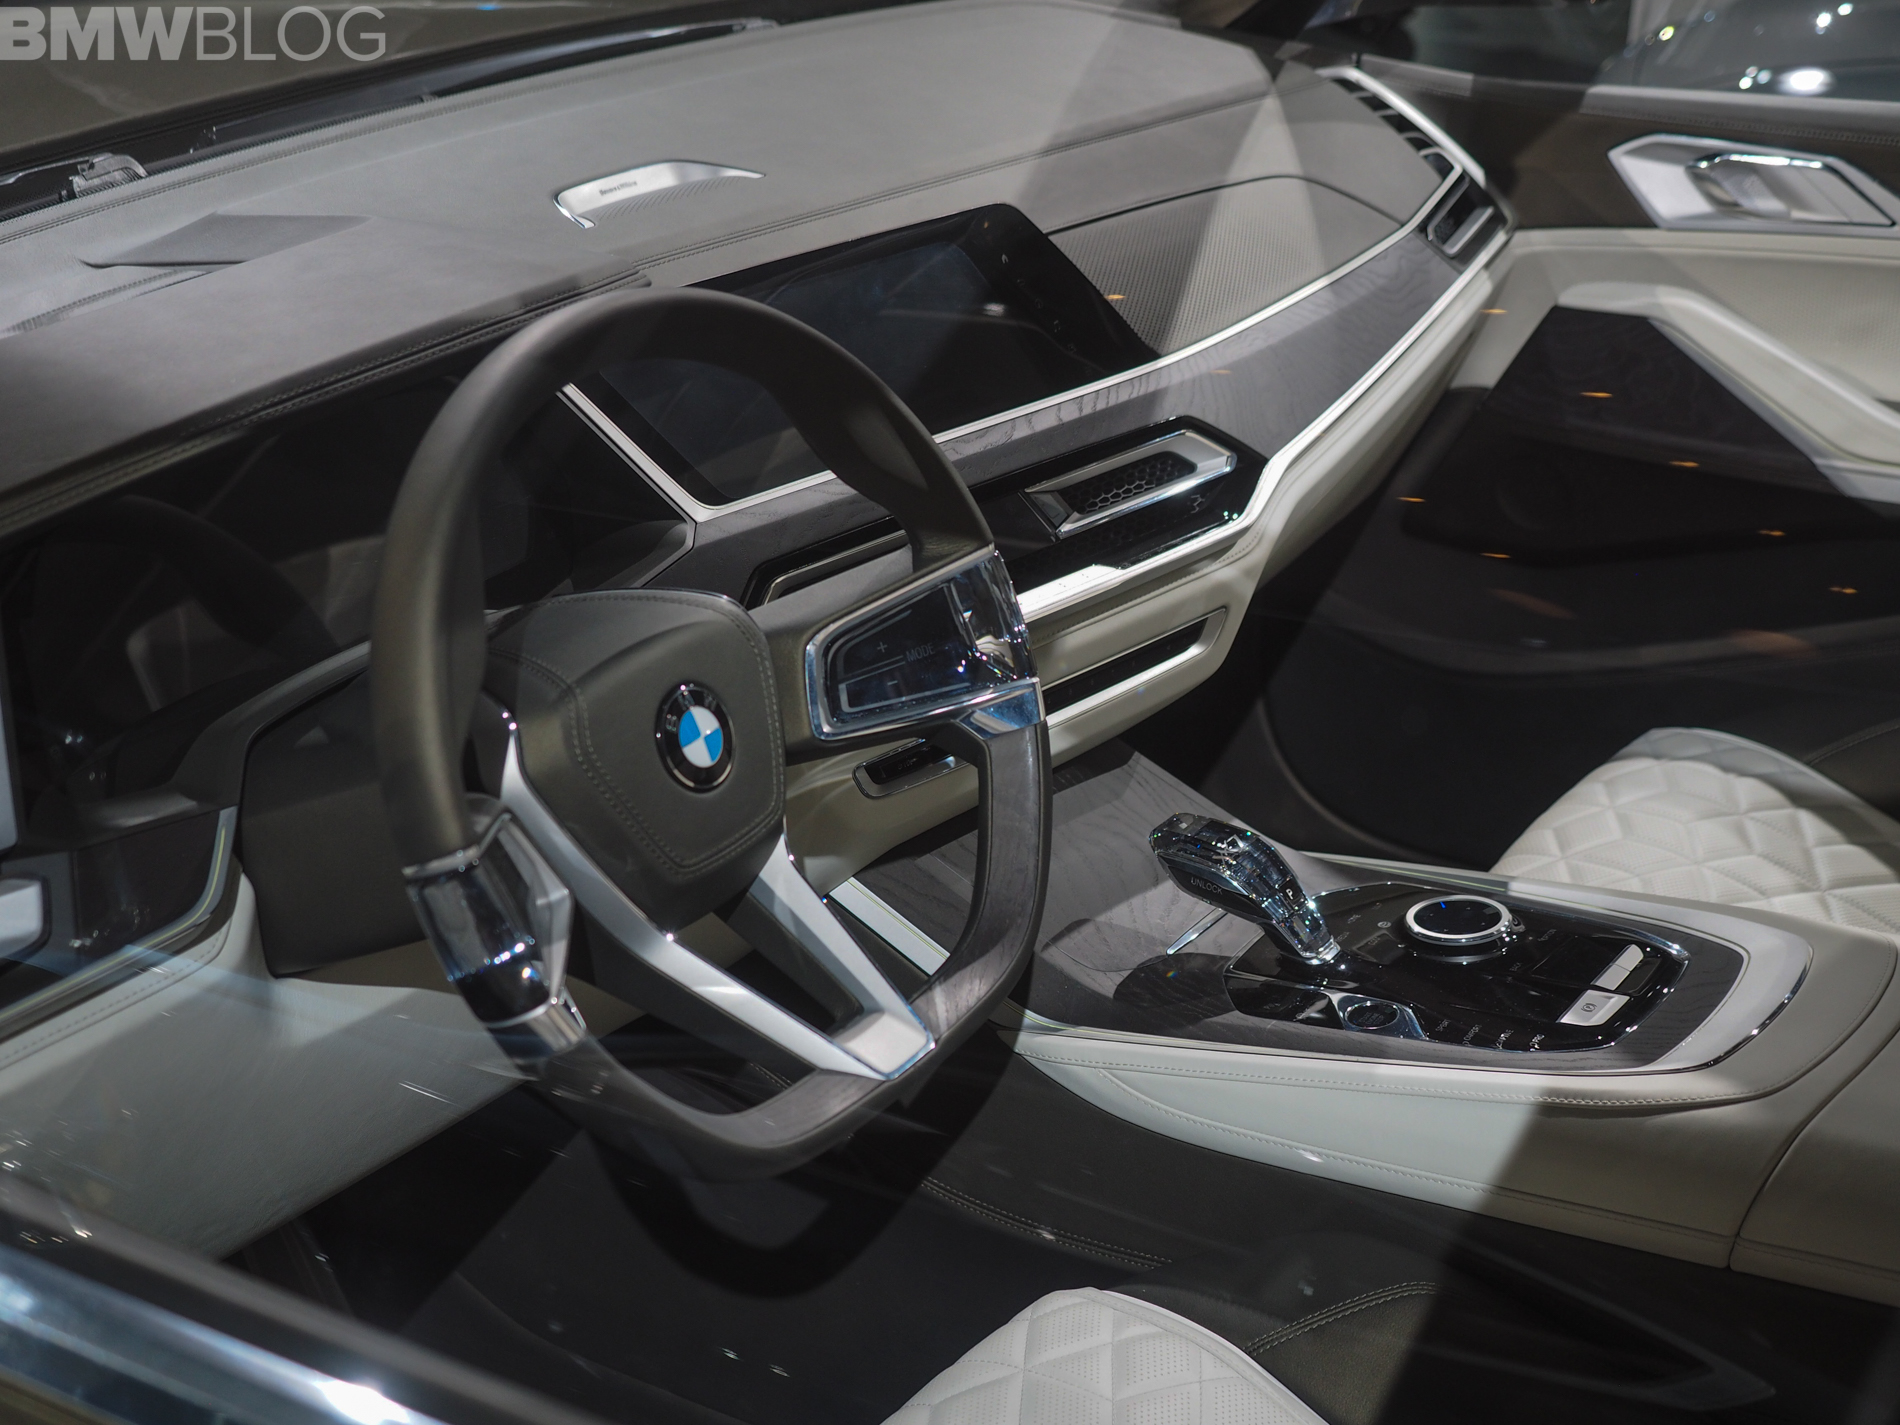 2017 La Auto Show Bmw X7 Iperformance